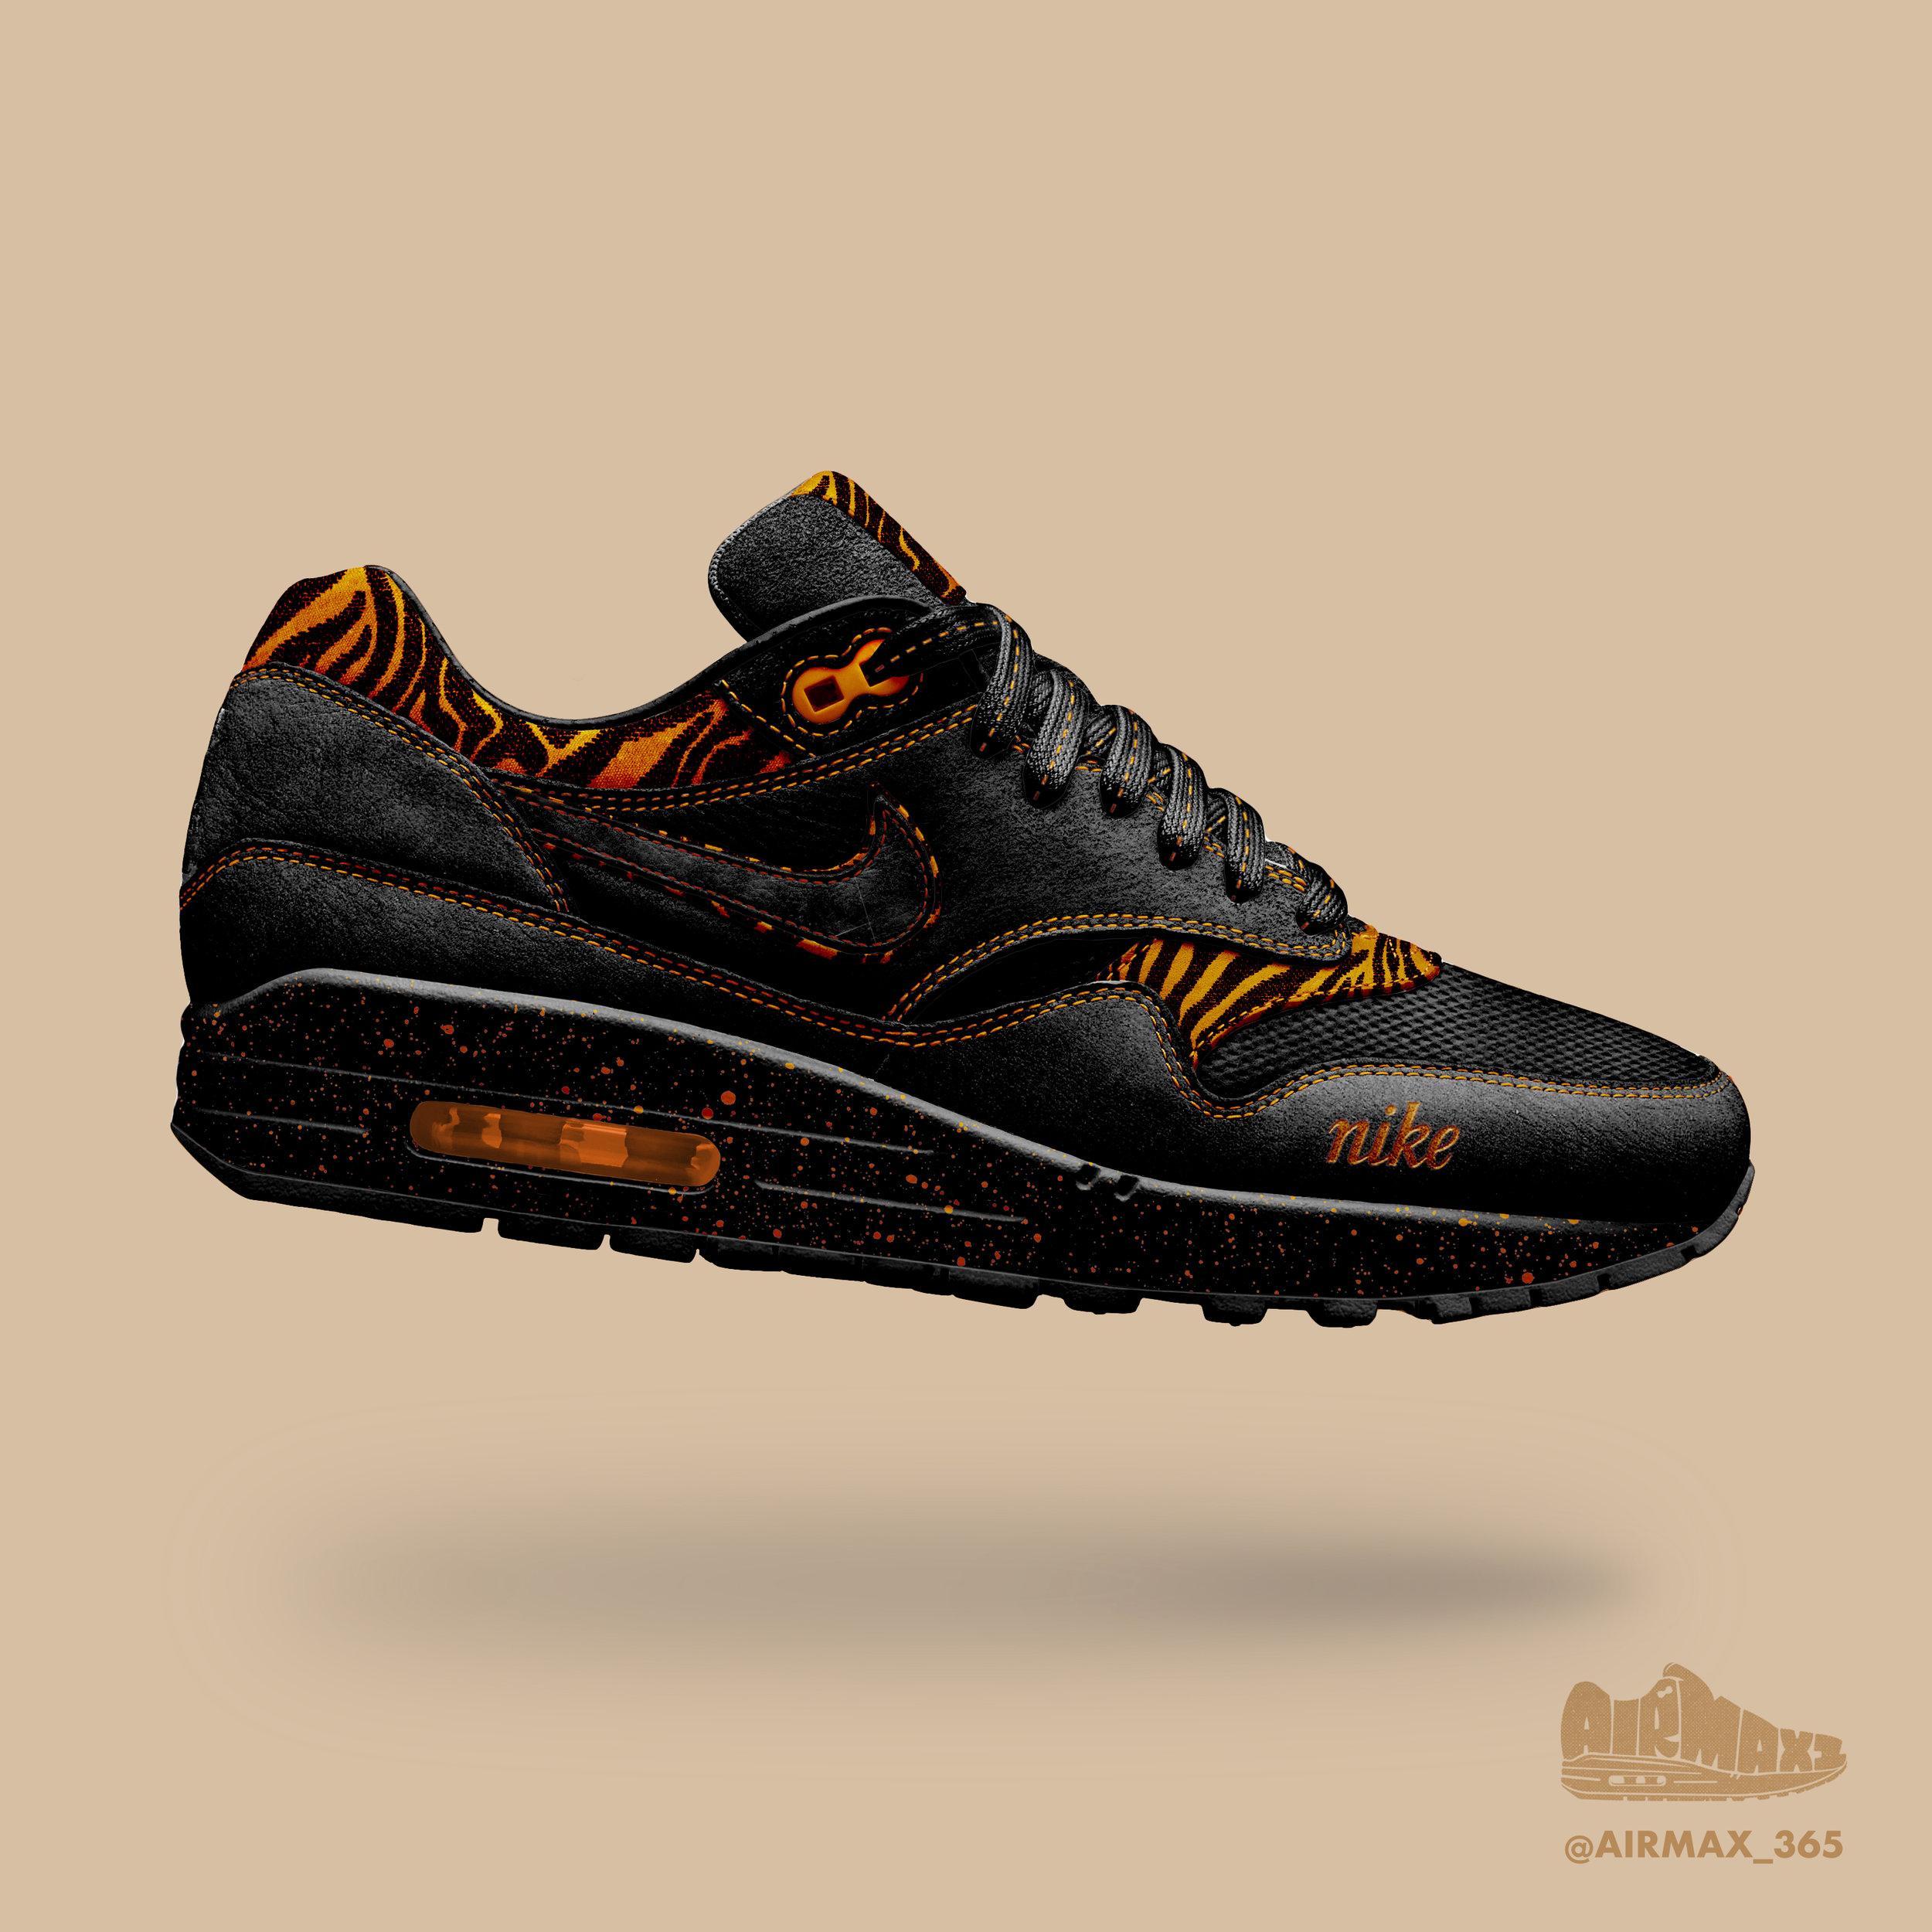 Day 182: Air Max 1 Wildside